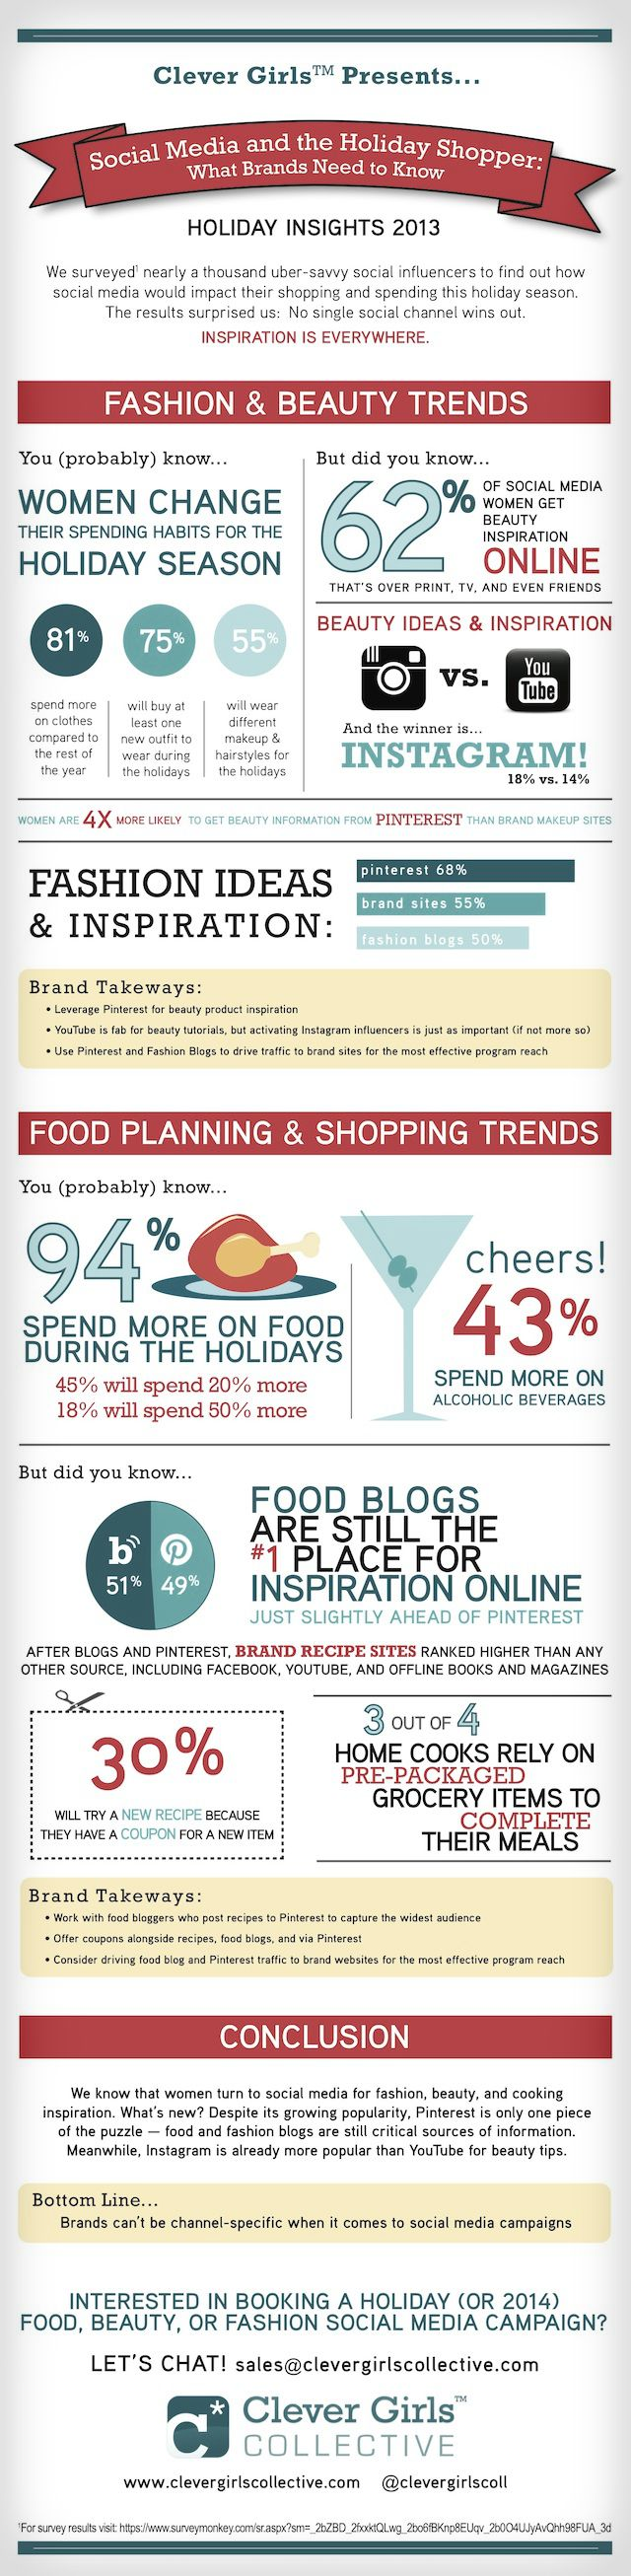 social-media-holiday-shopping